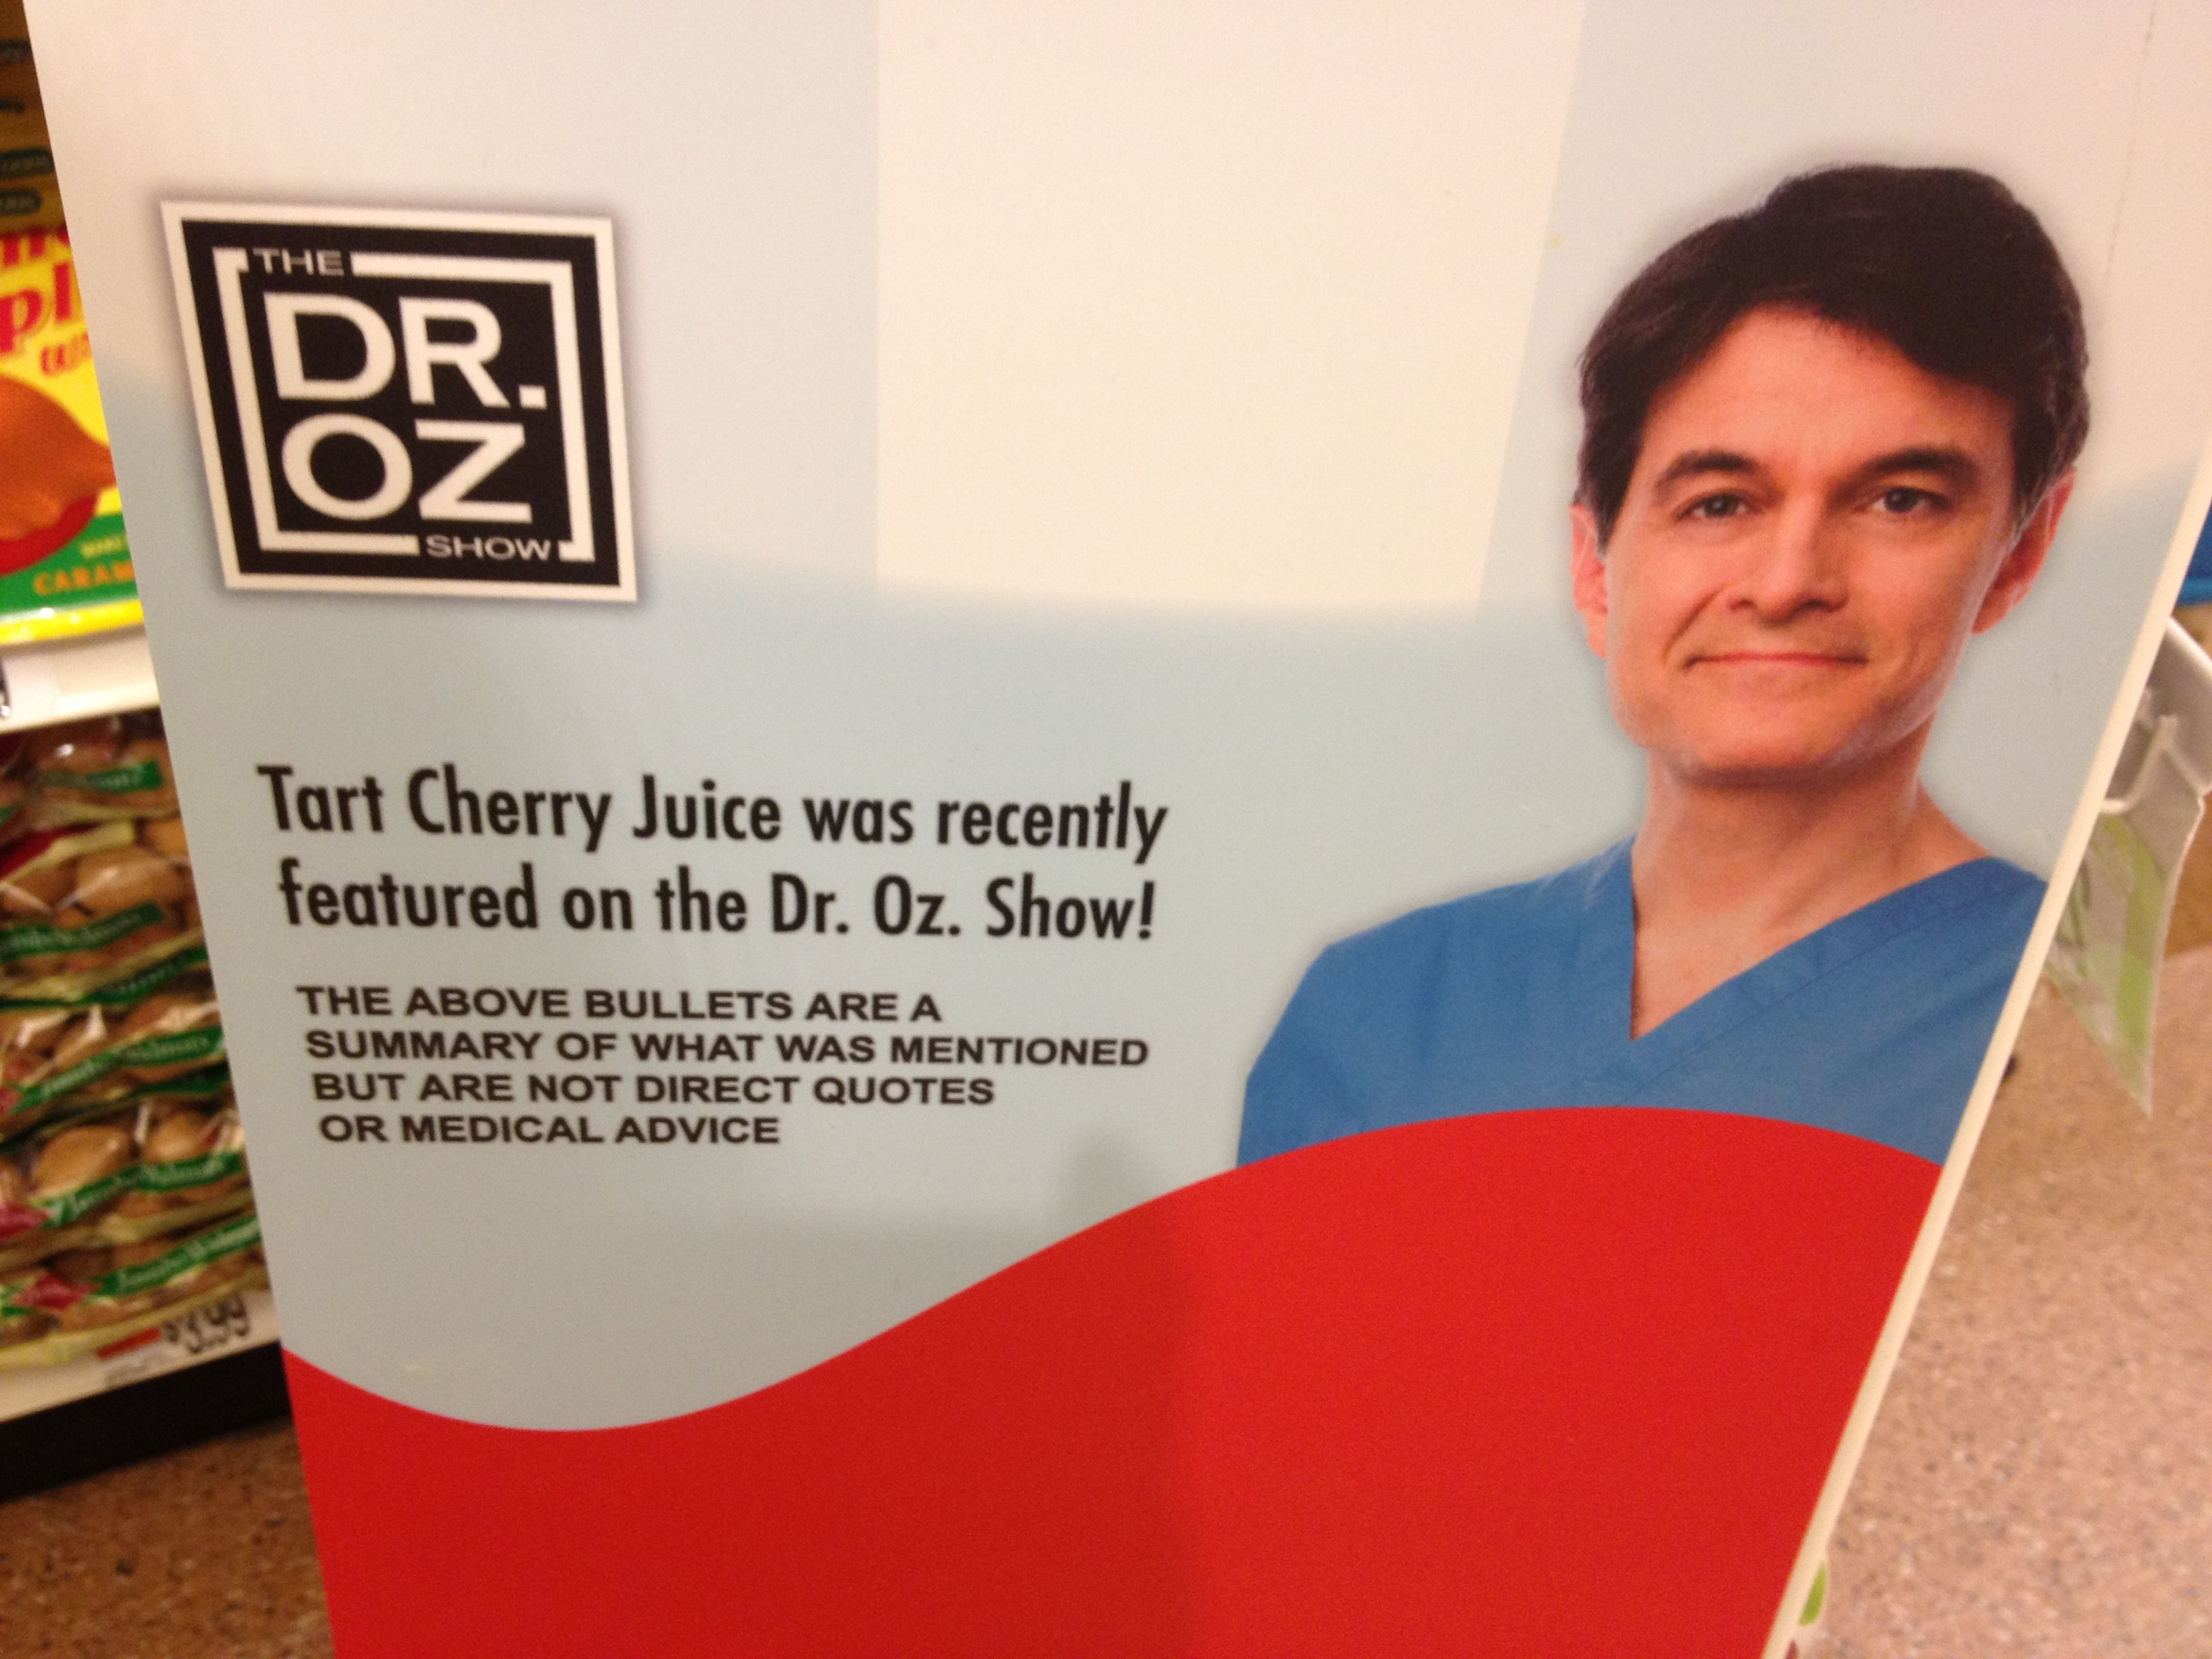 Tart Cherry Juice #Dr.OZ, as seen at Stop  Shop grocery store in CT, Summer 2013.